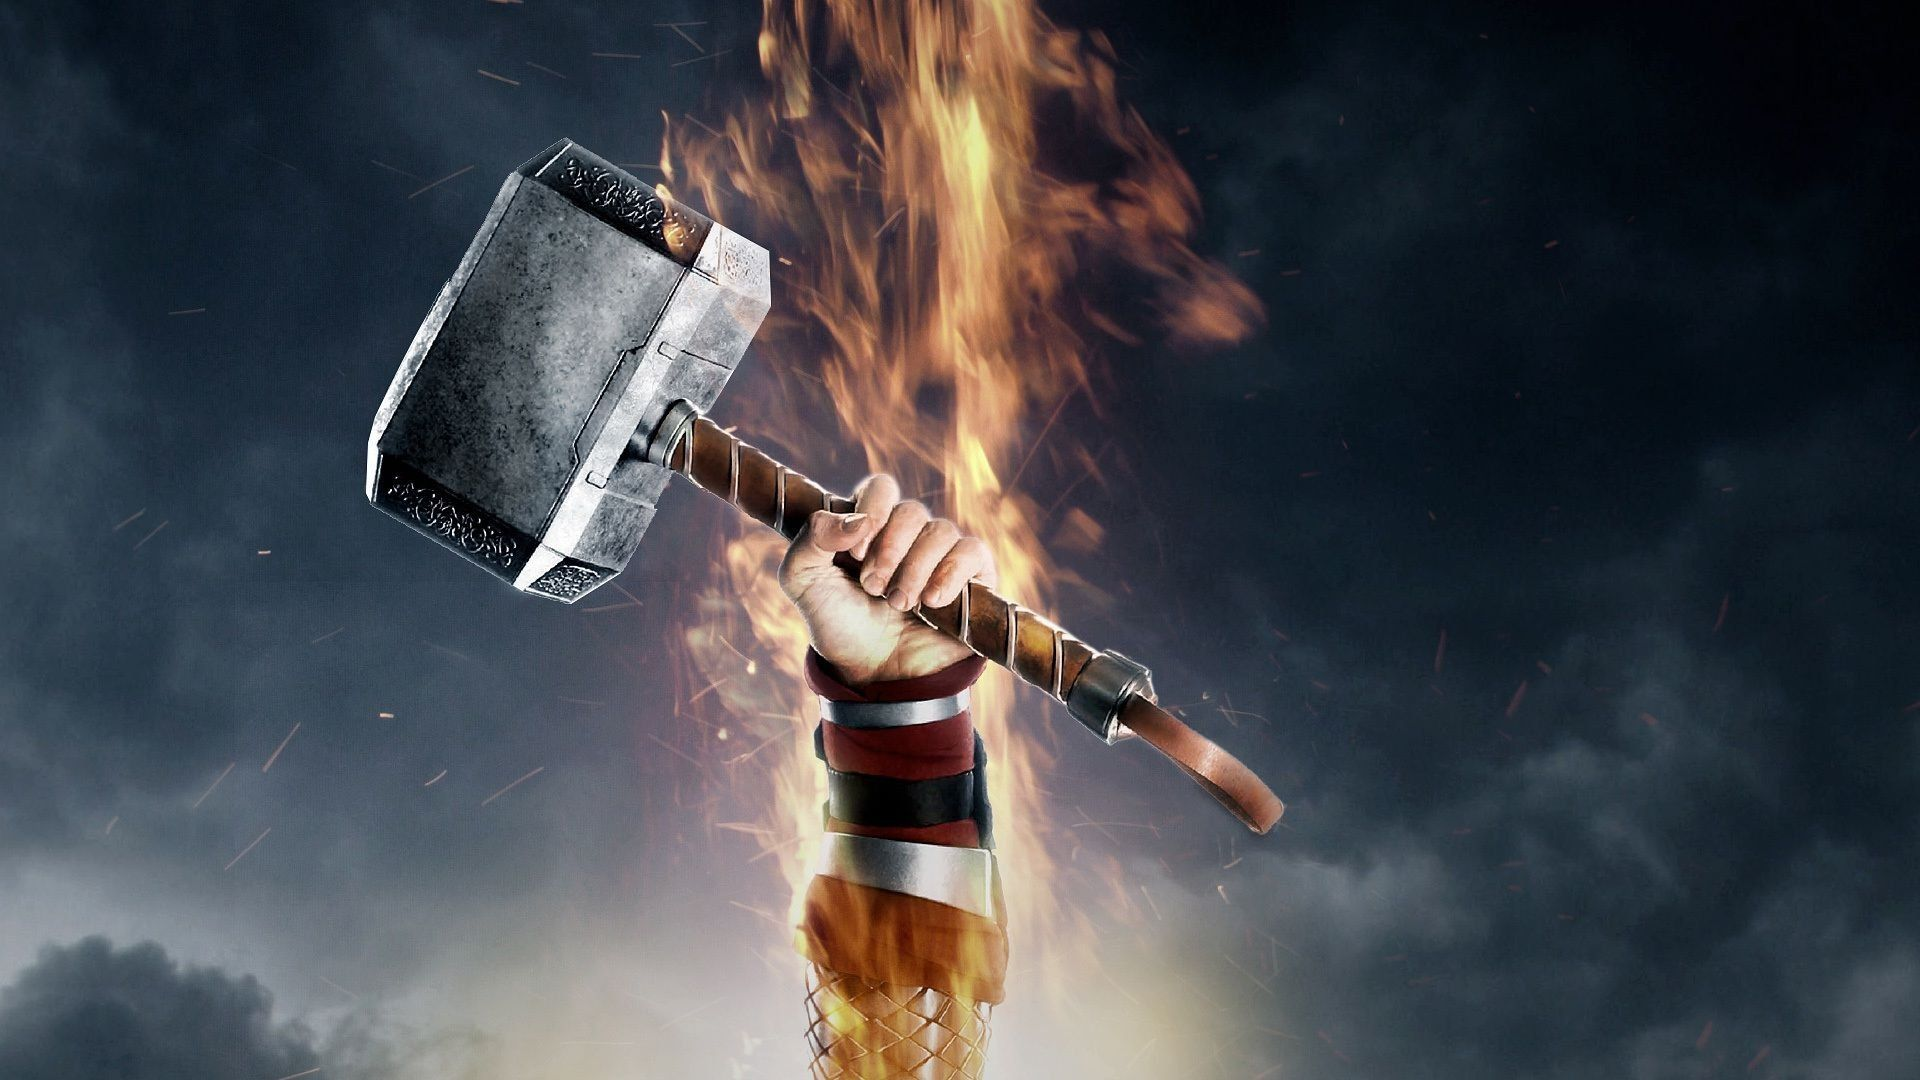 Thor Laptop Wallpapers Top Free Thor Laptop Backgrounds